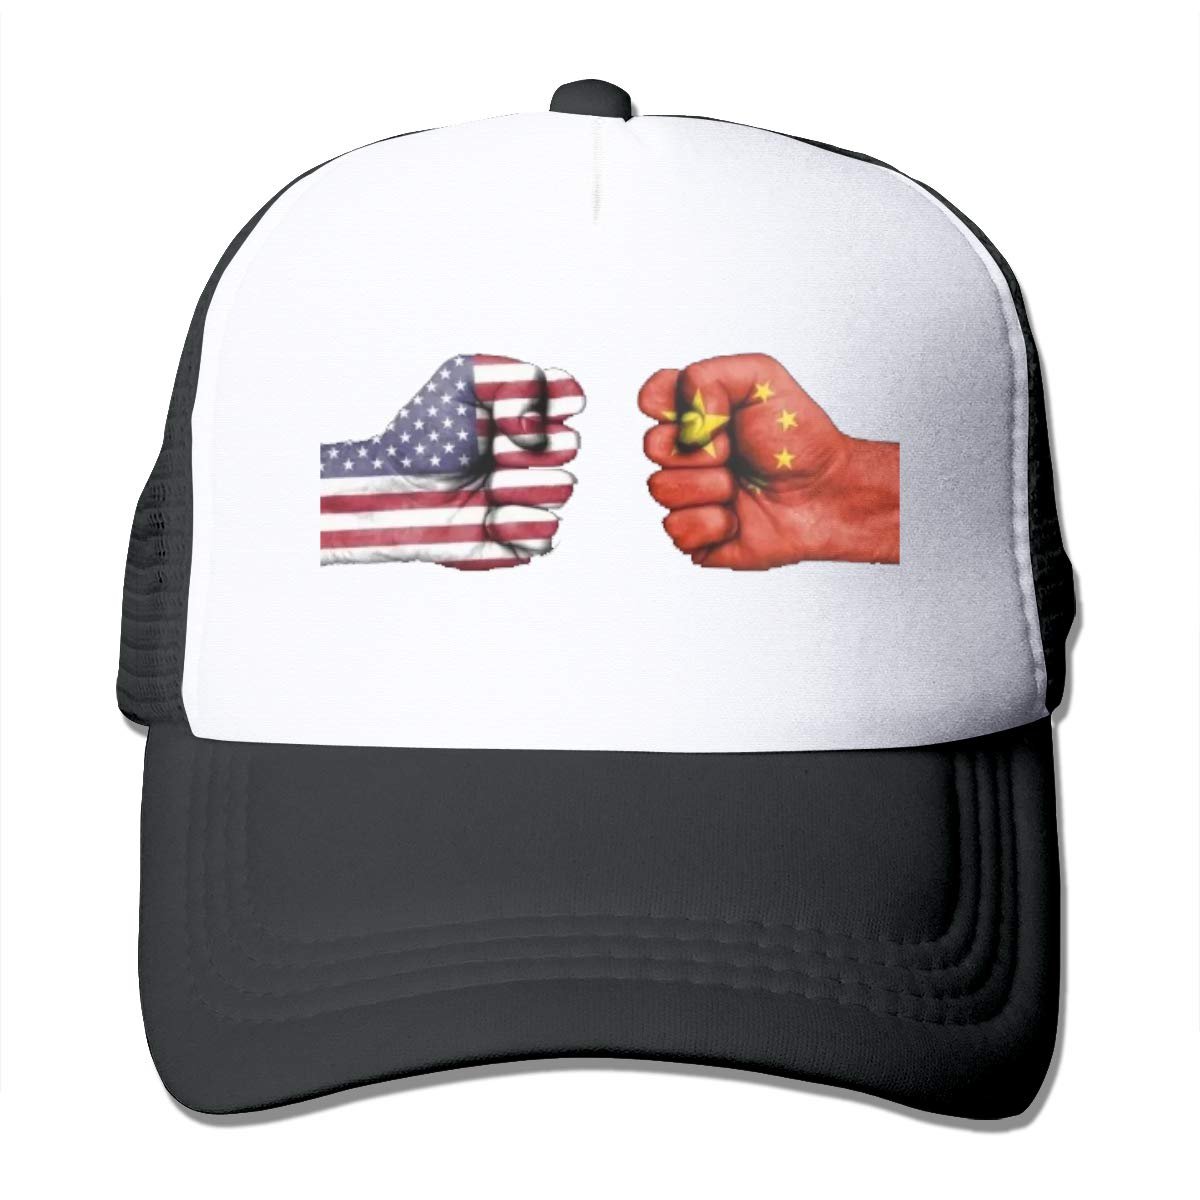 Zhiwei Station China and American Unisex 3D Printed Trucker Hat Black